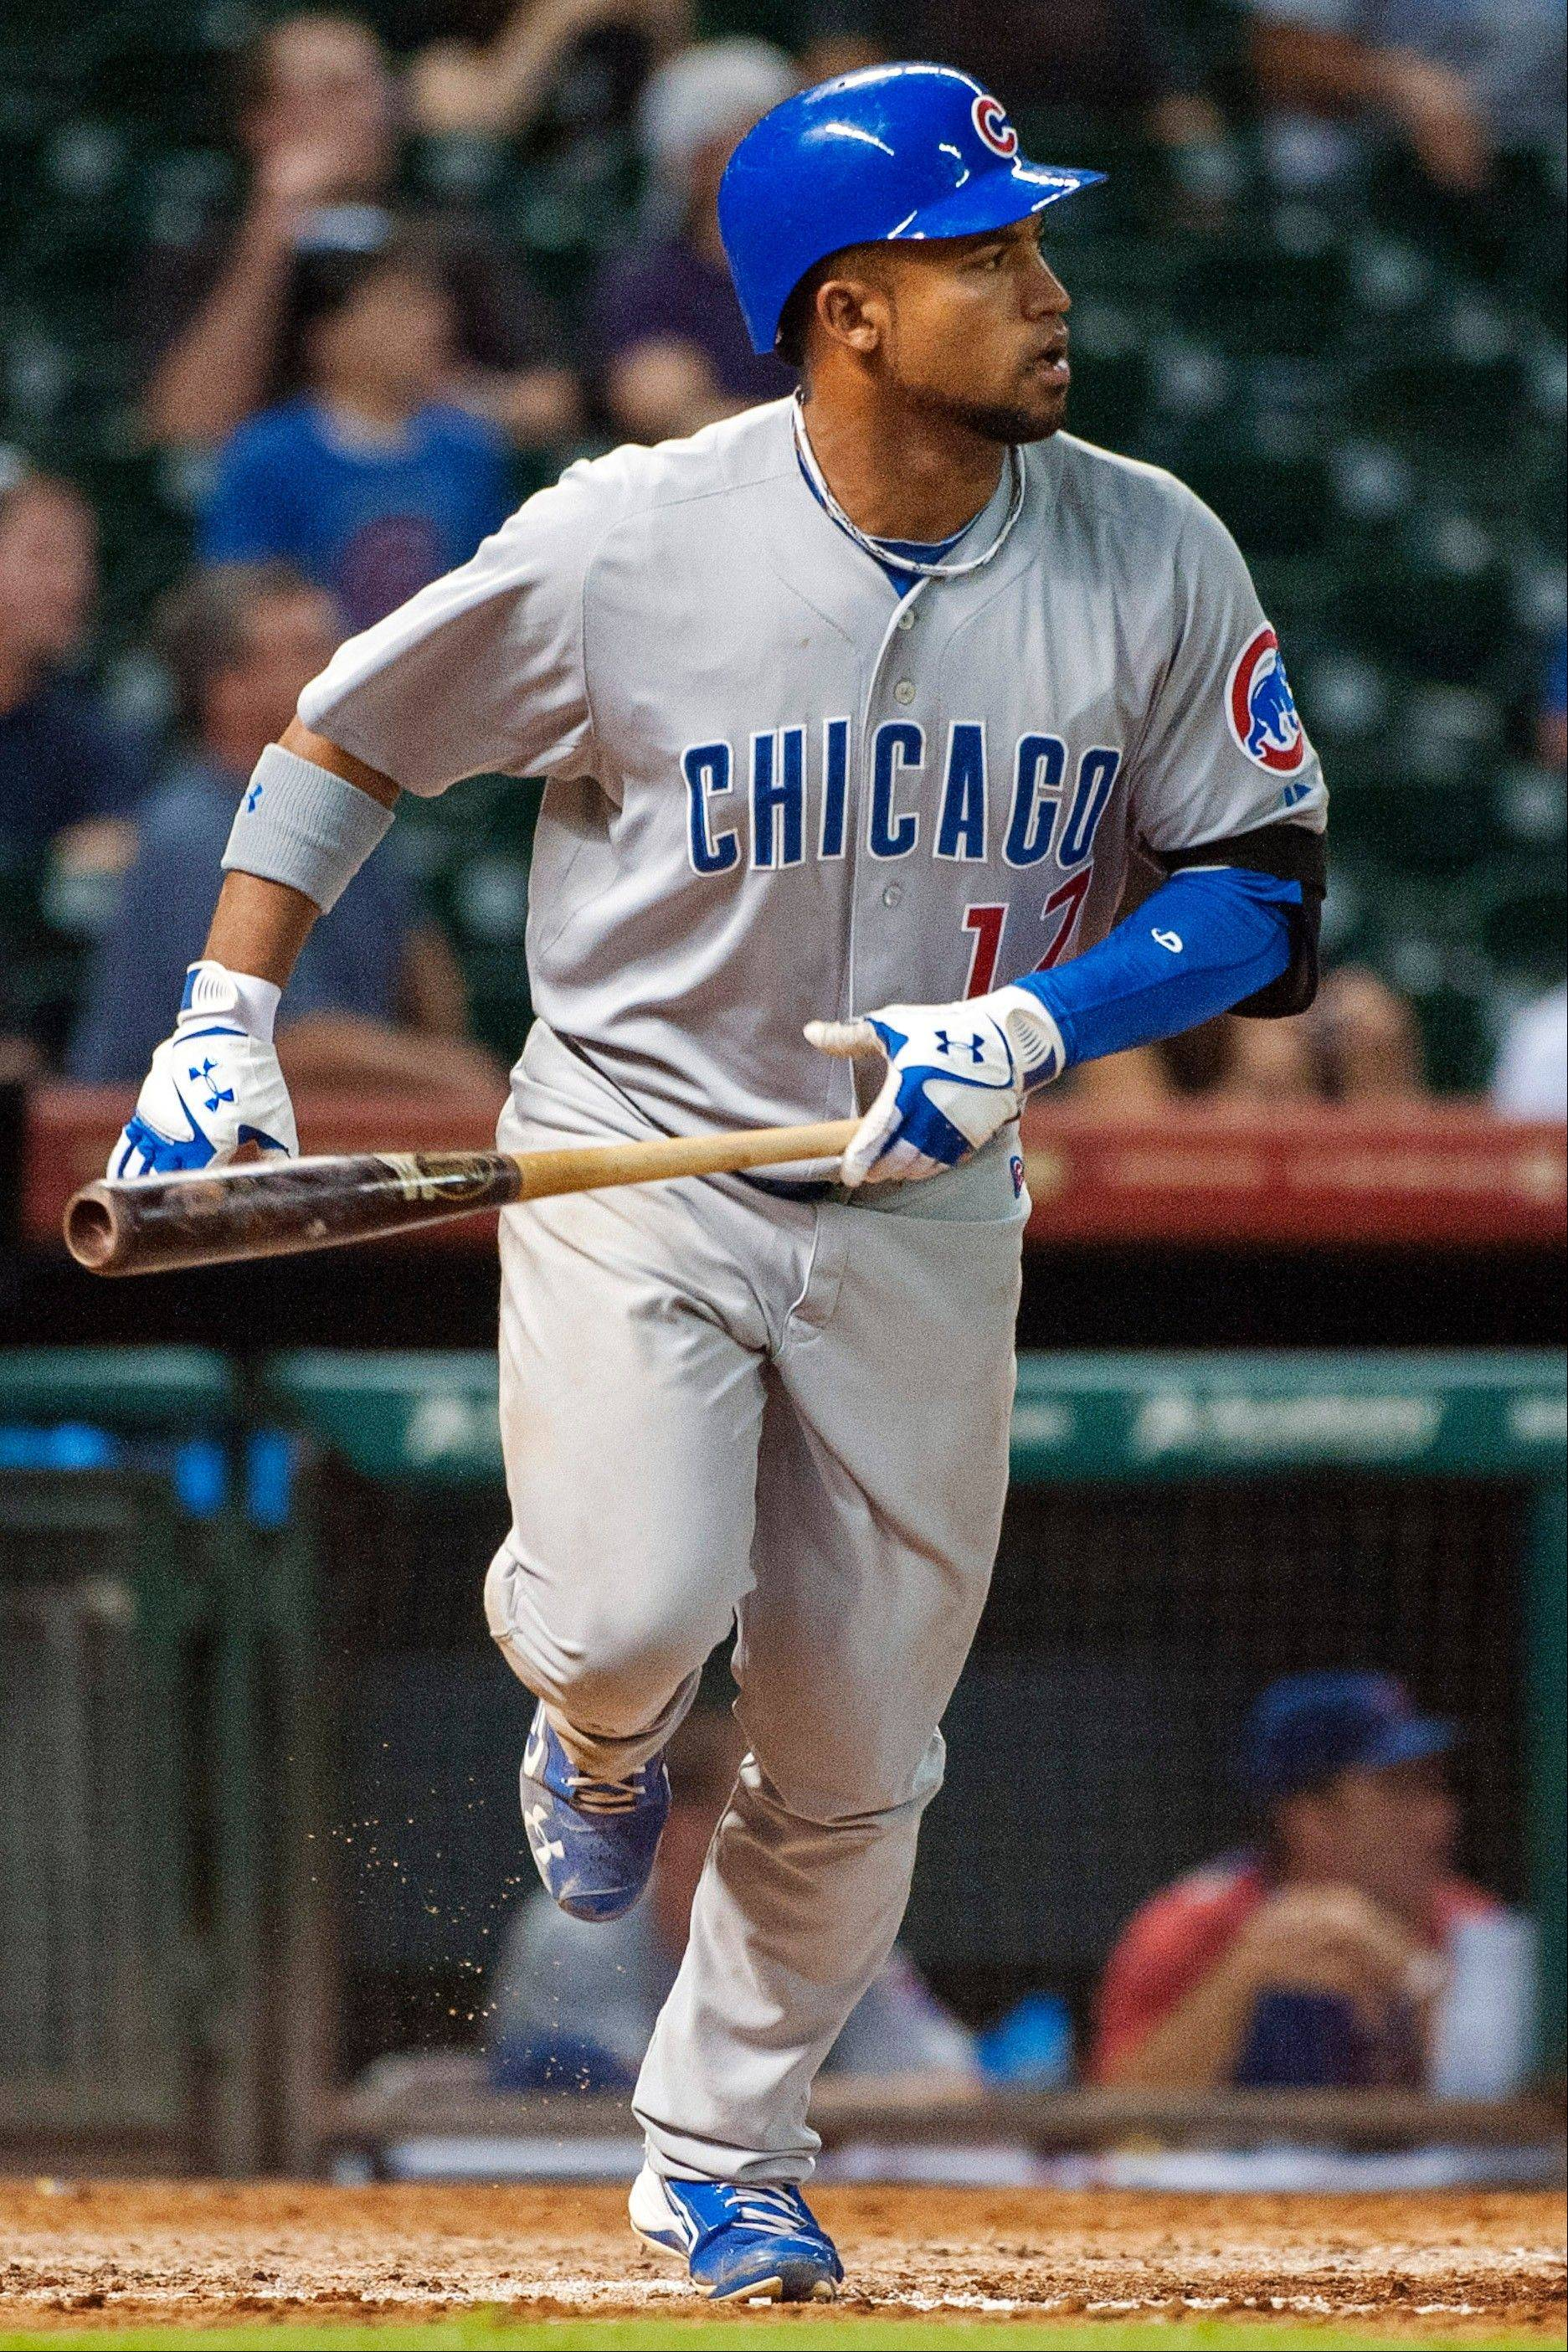 Outfielder Dave Sappelt, who came over to the Cubs in the Sean Marshall trade, has shown signs that he can be a contributor as early as next season.